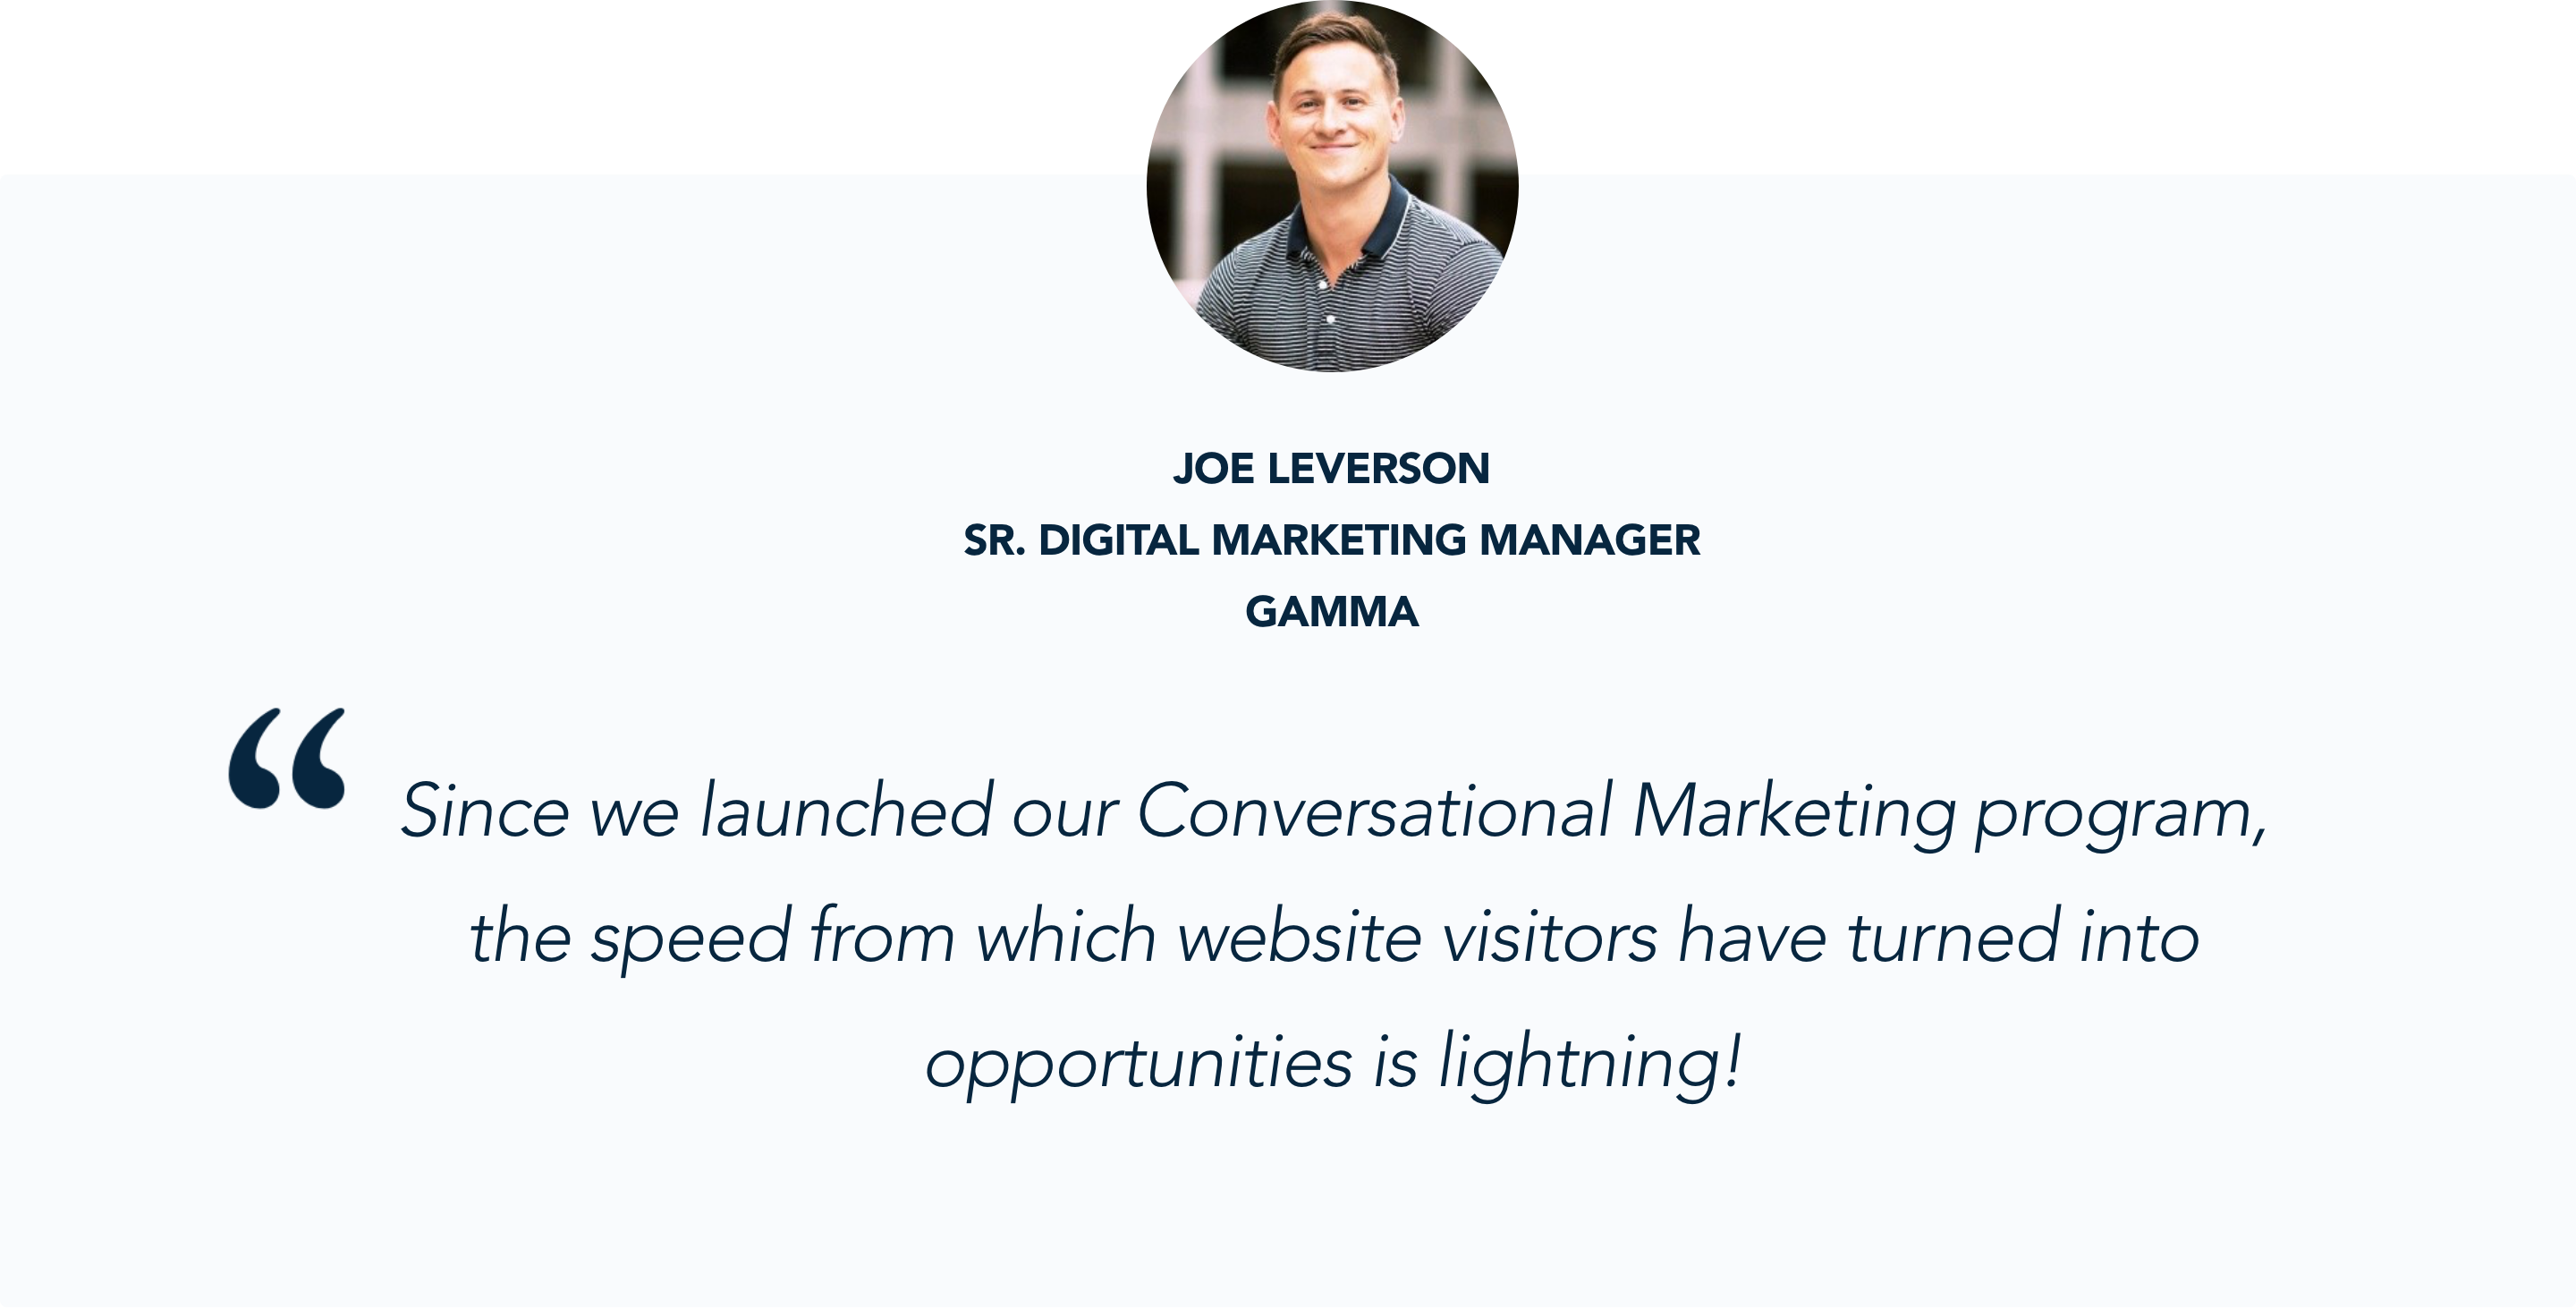 Salesforce Pardot Customer Joe Leverson has seen immediate success from Qualified's Conversational Marketing solution